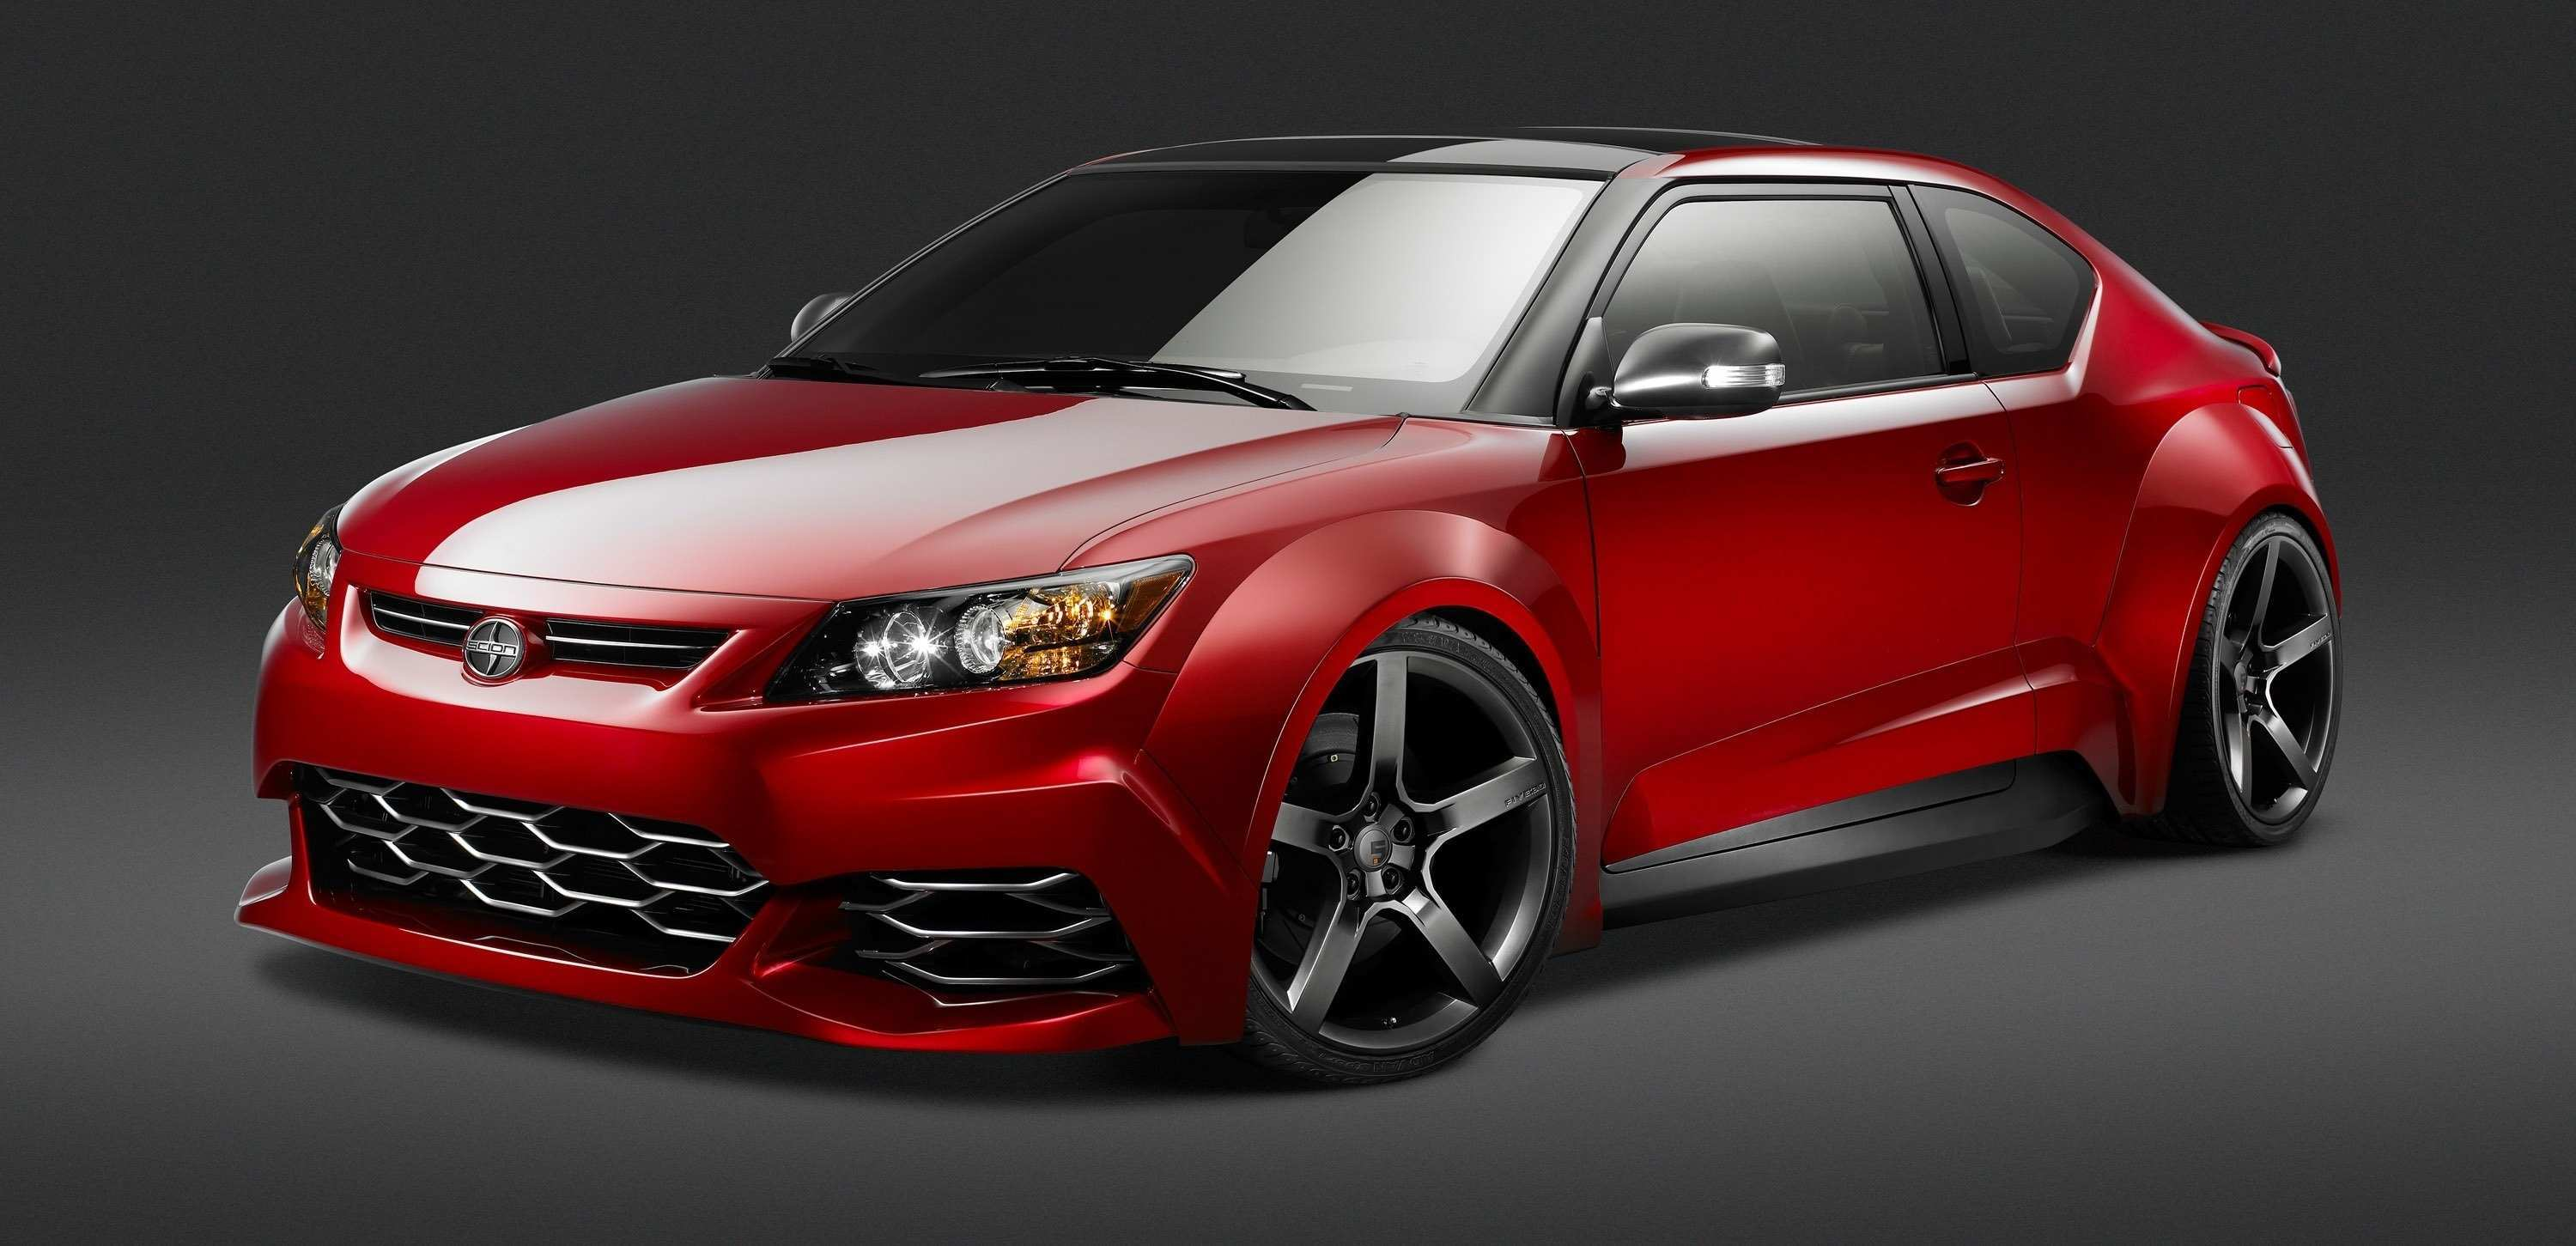 88 The Best 2020 Scion Tced Release Date And Concept